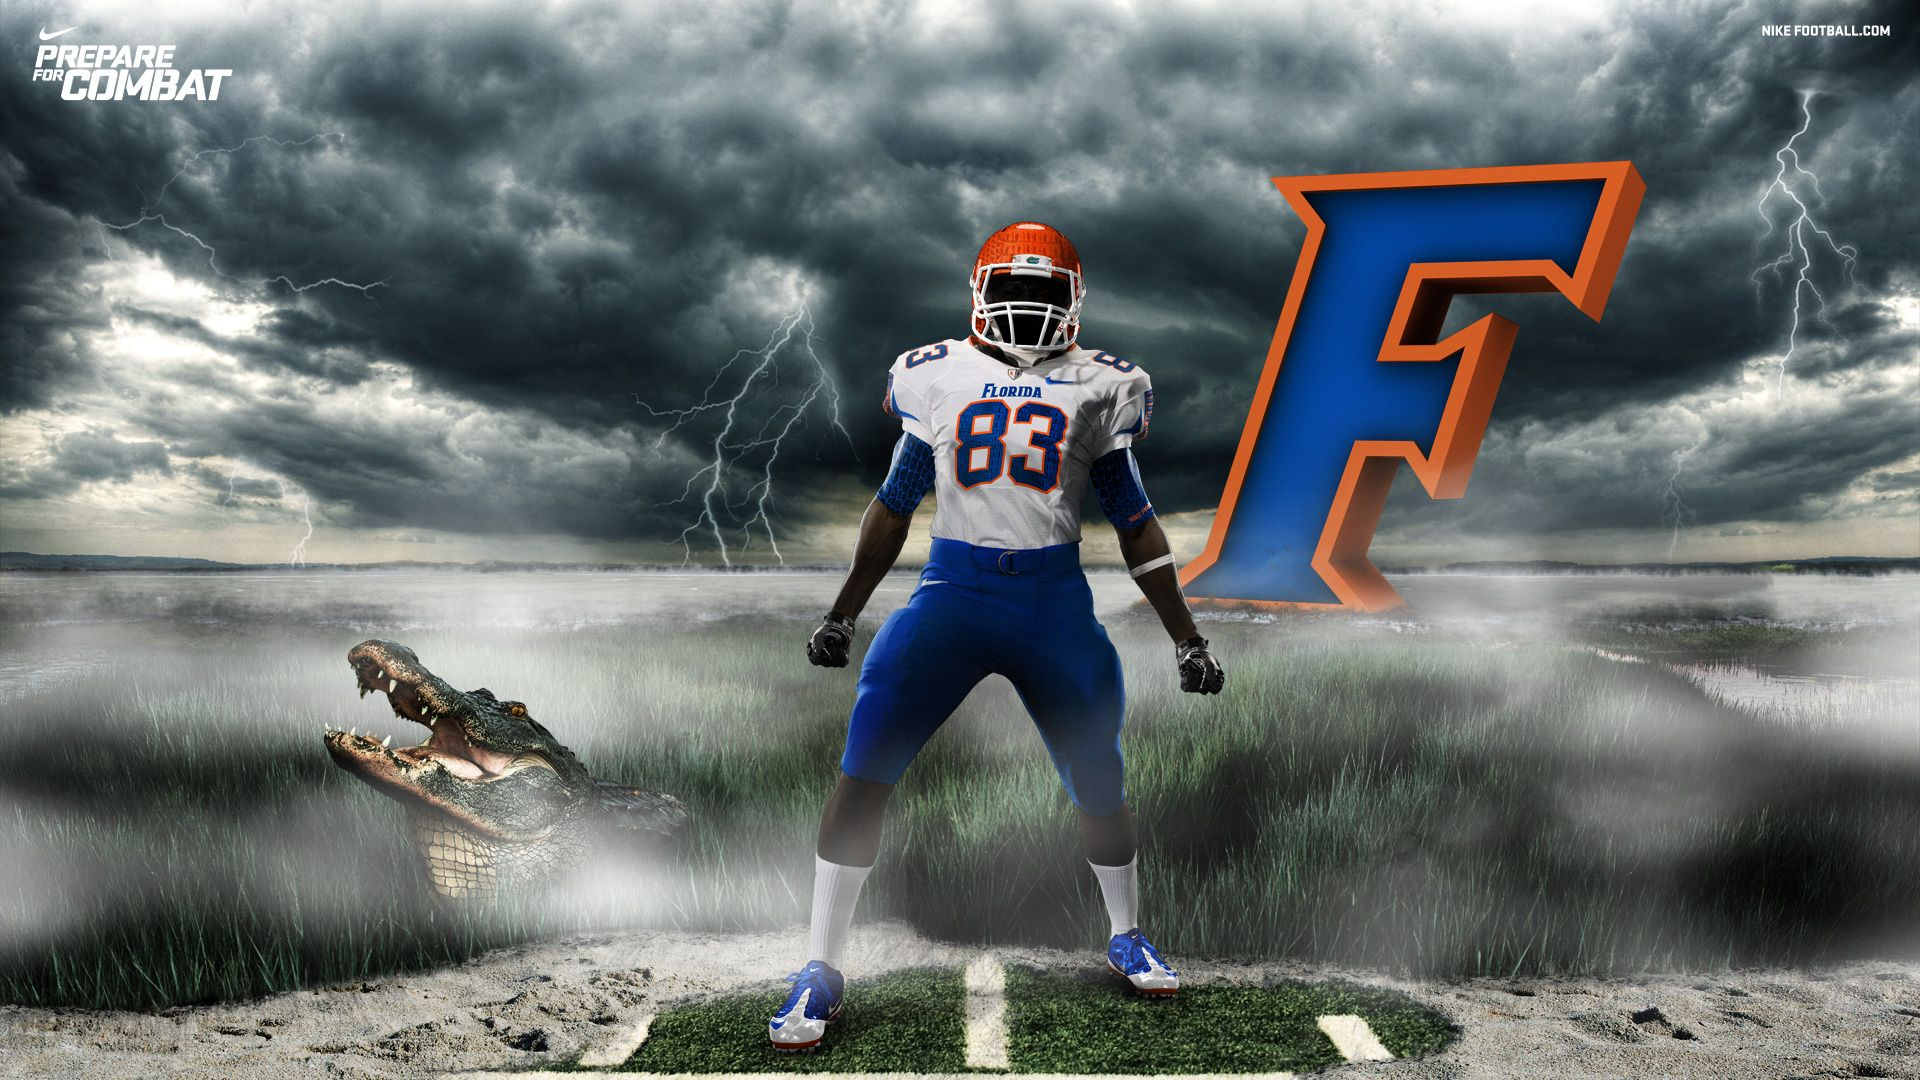 Cool Photo For That Other Florida Team Florida Gators Football Florida Gators Florida Football